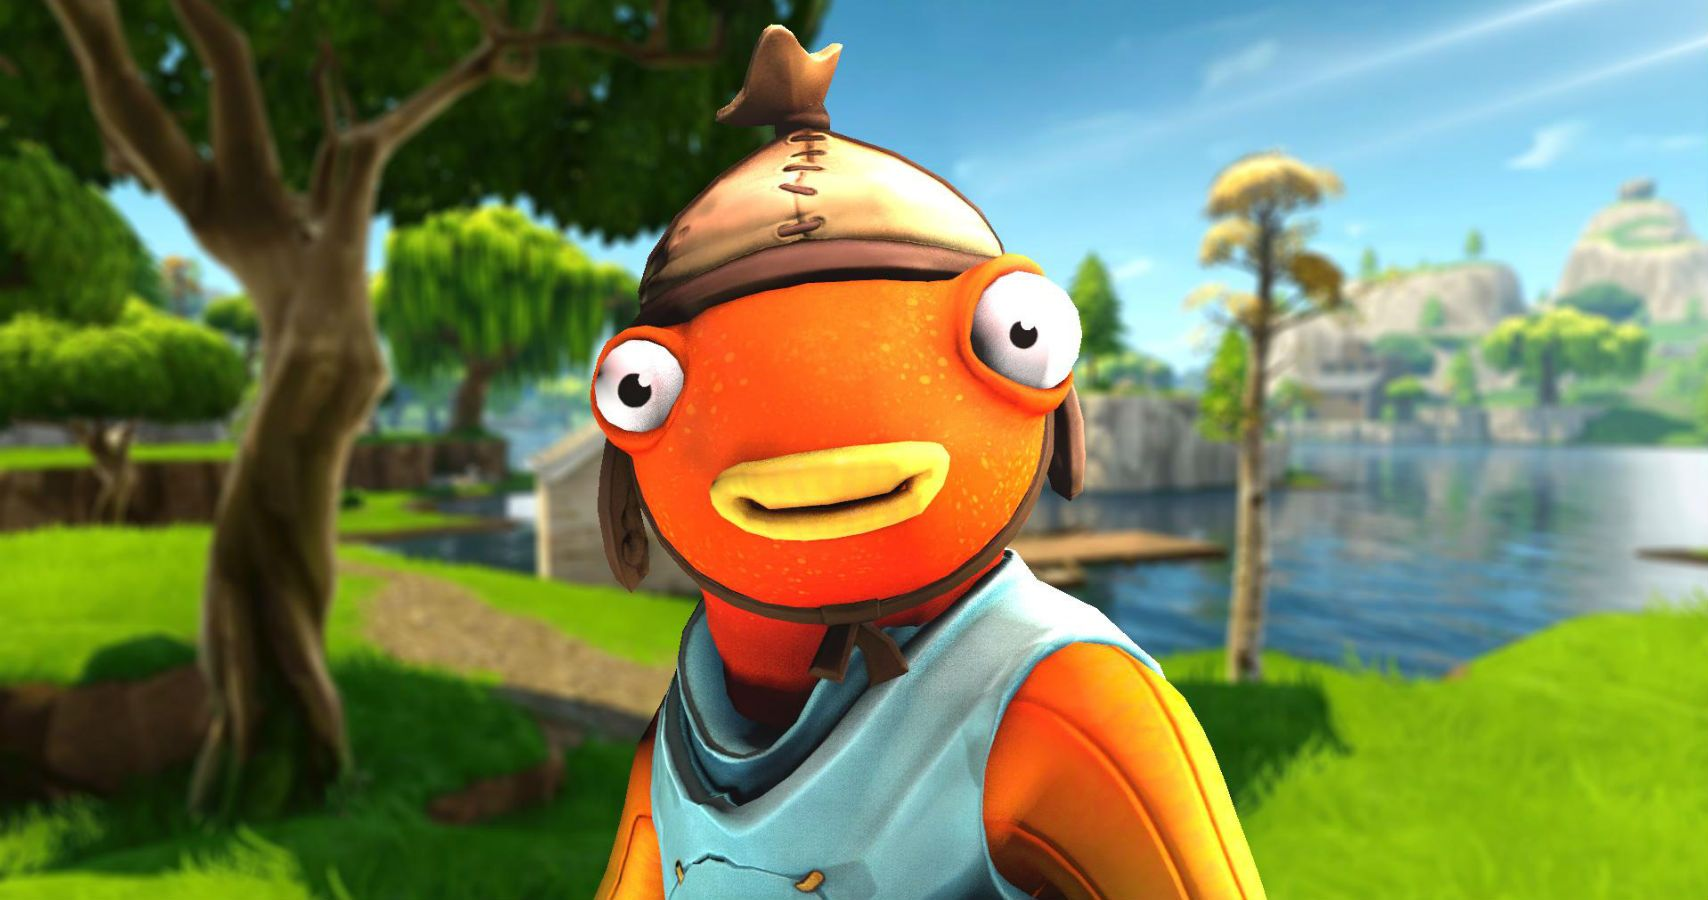 Watch: Fortnite's Fishstick Is Given A Voice In Hilarious New Skit